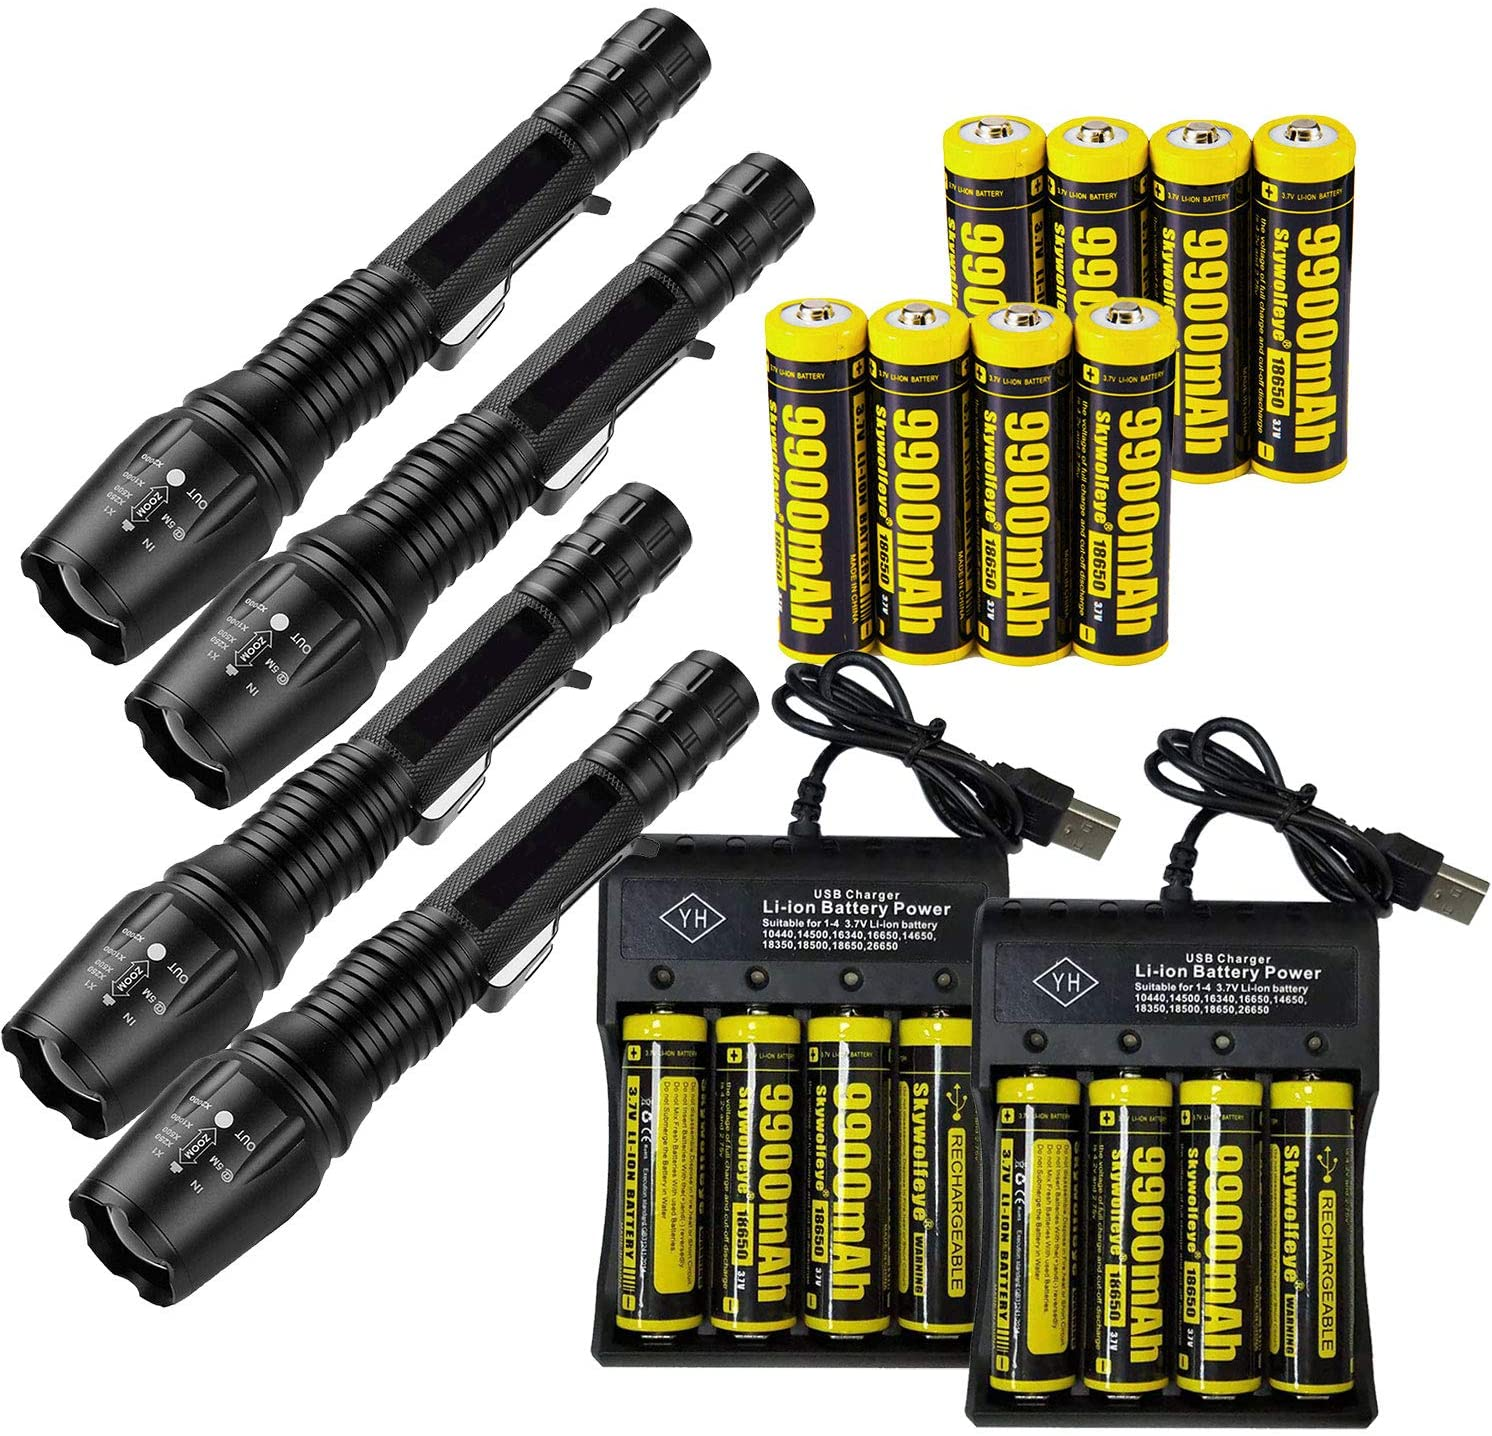 4 Set Tactical 90000LM Zoomable 5 Modes Portable LED 18650 Flashlight 9900mAh Rechargeable Batteries 4 Slots USB Universal Smart Battery Chargers for Camping Hiking Running Outdoor